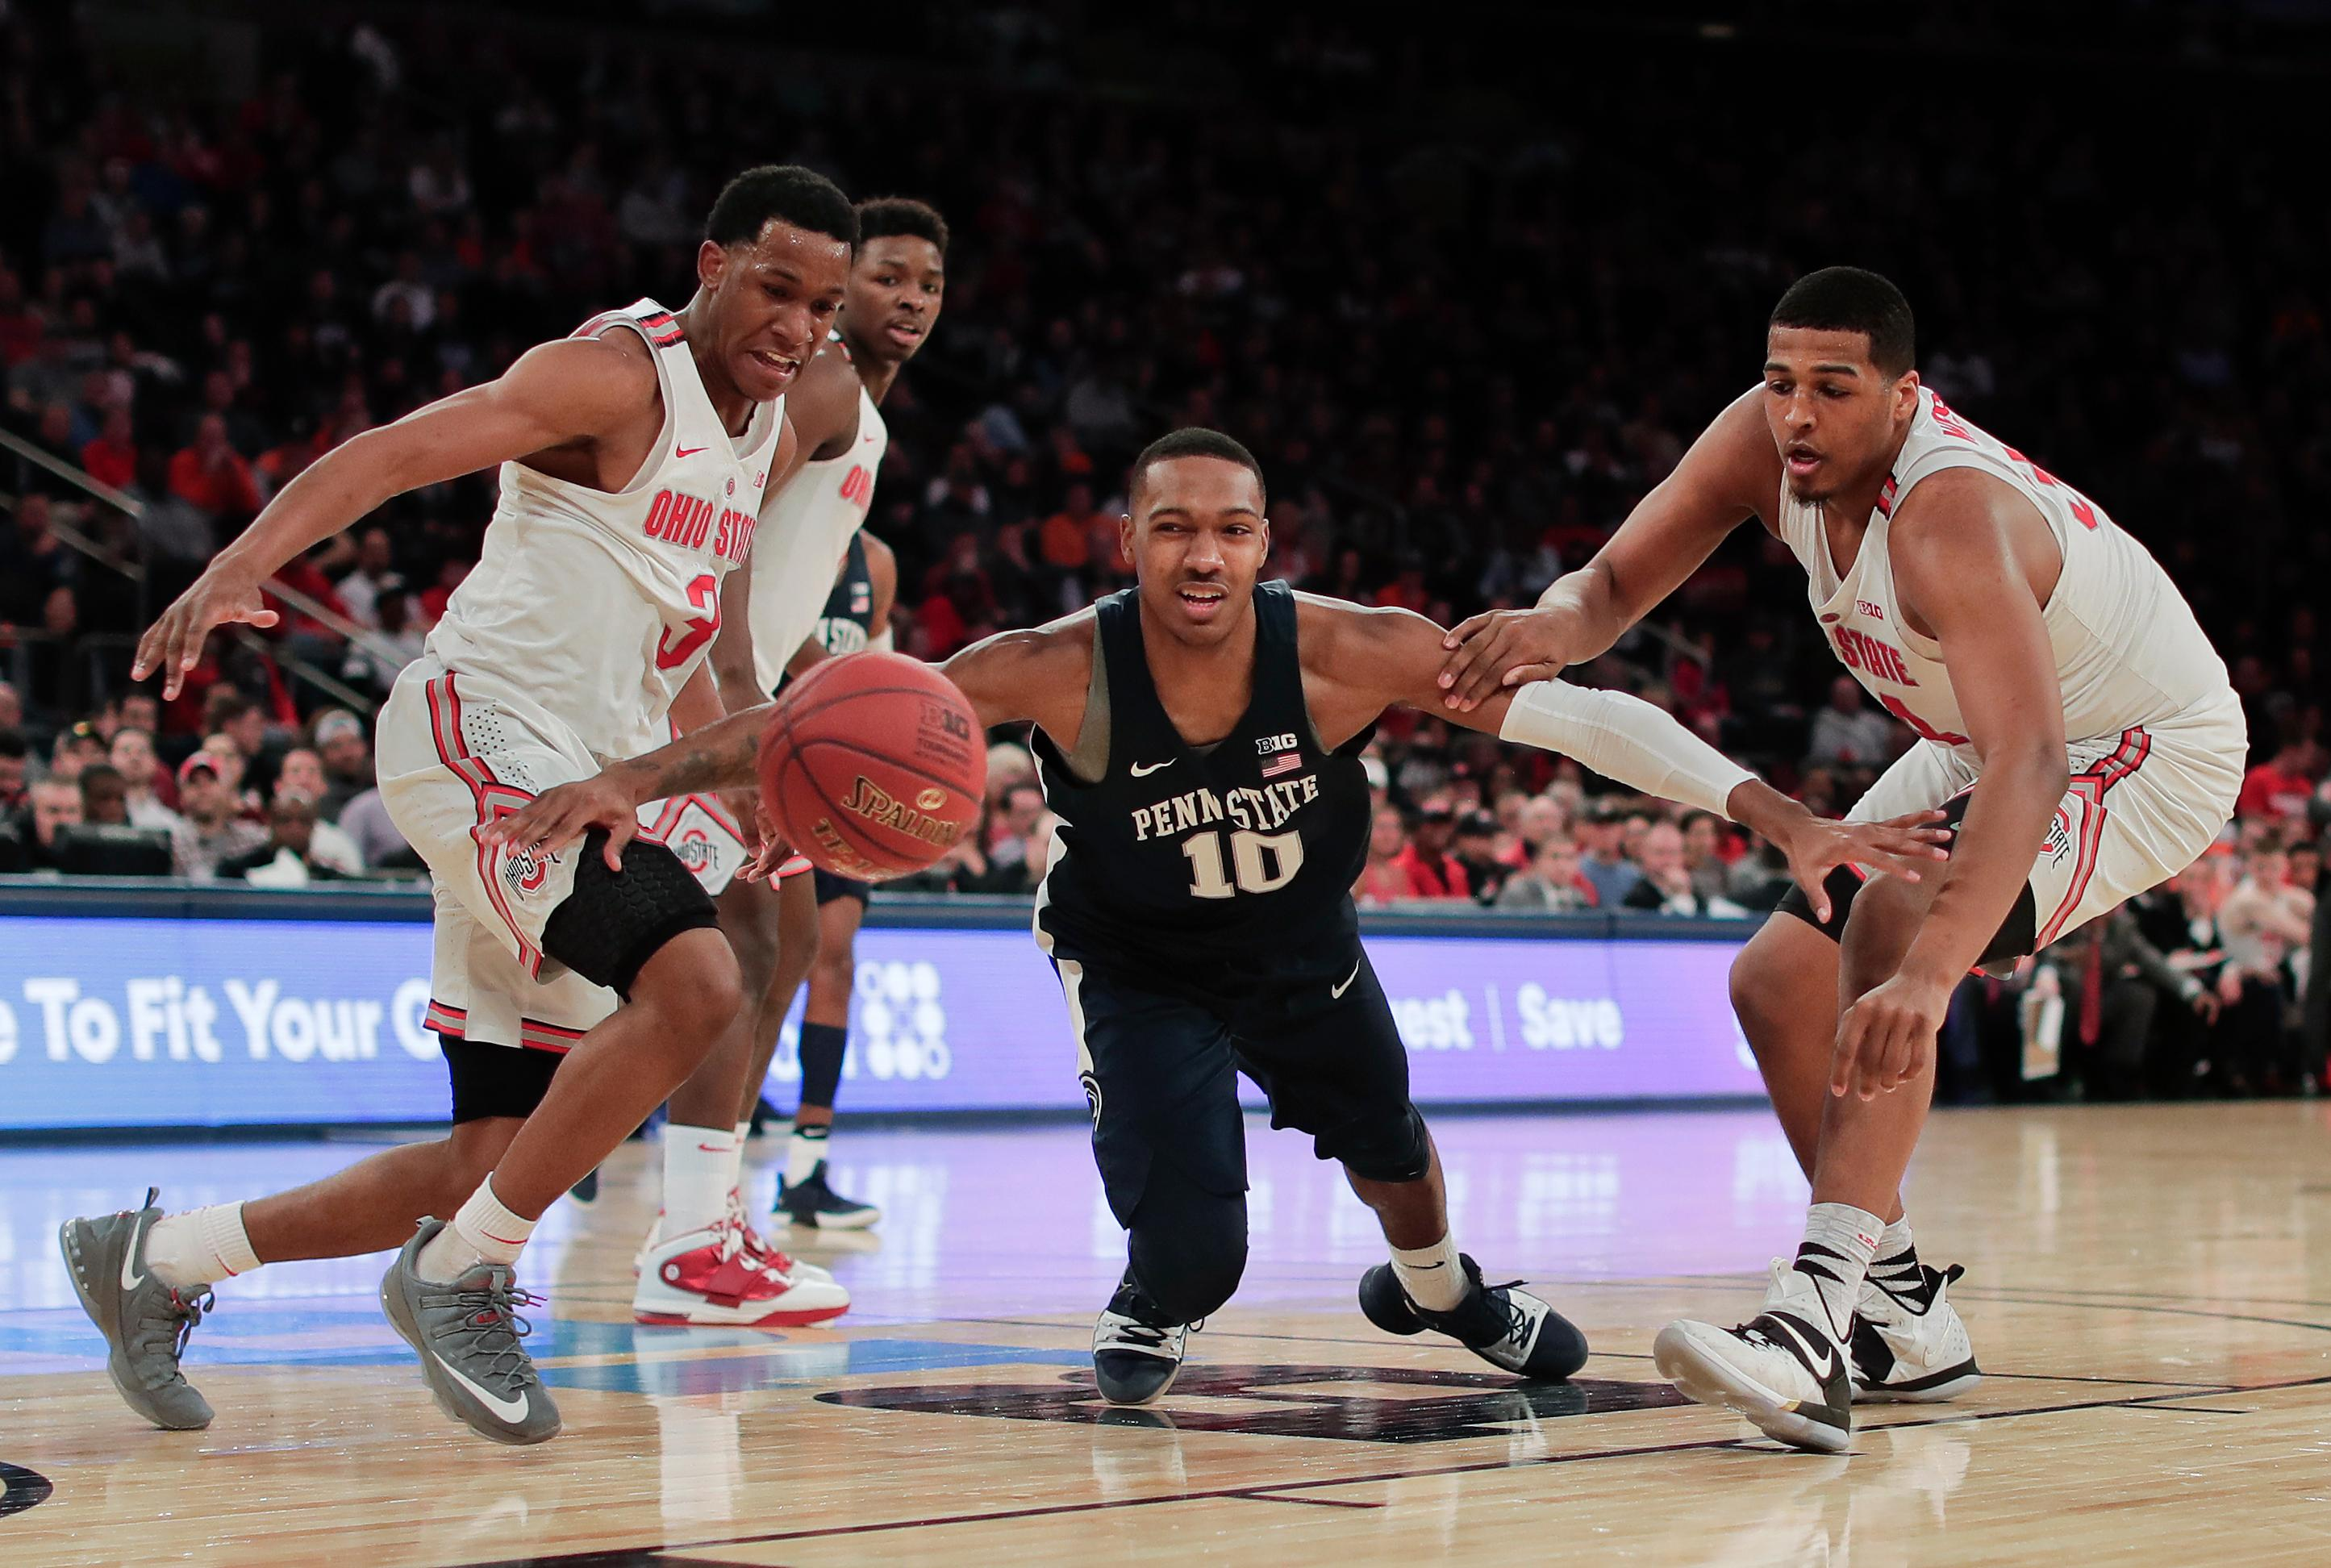 Penn State guard Tony Carr (10) loses control of the ball as he drives to the basket against Ohio State during the second half of an NCAA Big Ten Conference tournament college basketball game, Friday, March 2, 2018, in New York. Penn State won 69-68. (AP Photo/Julie Jacobson)